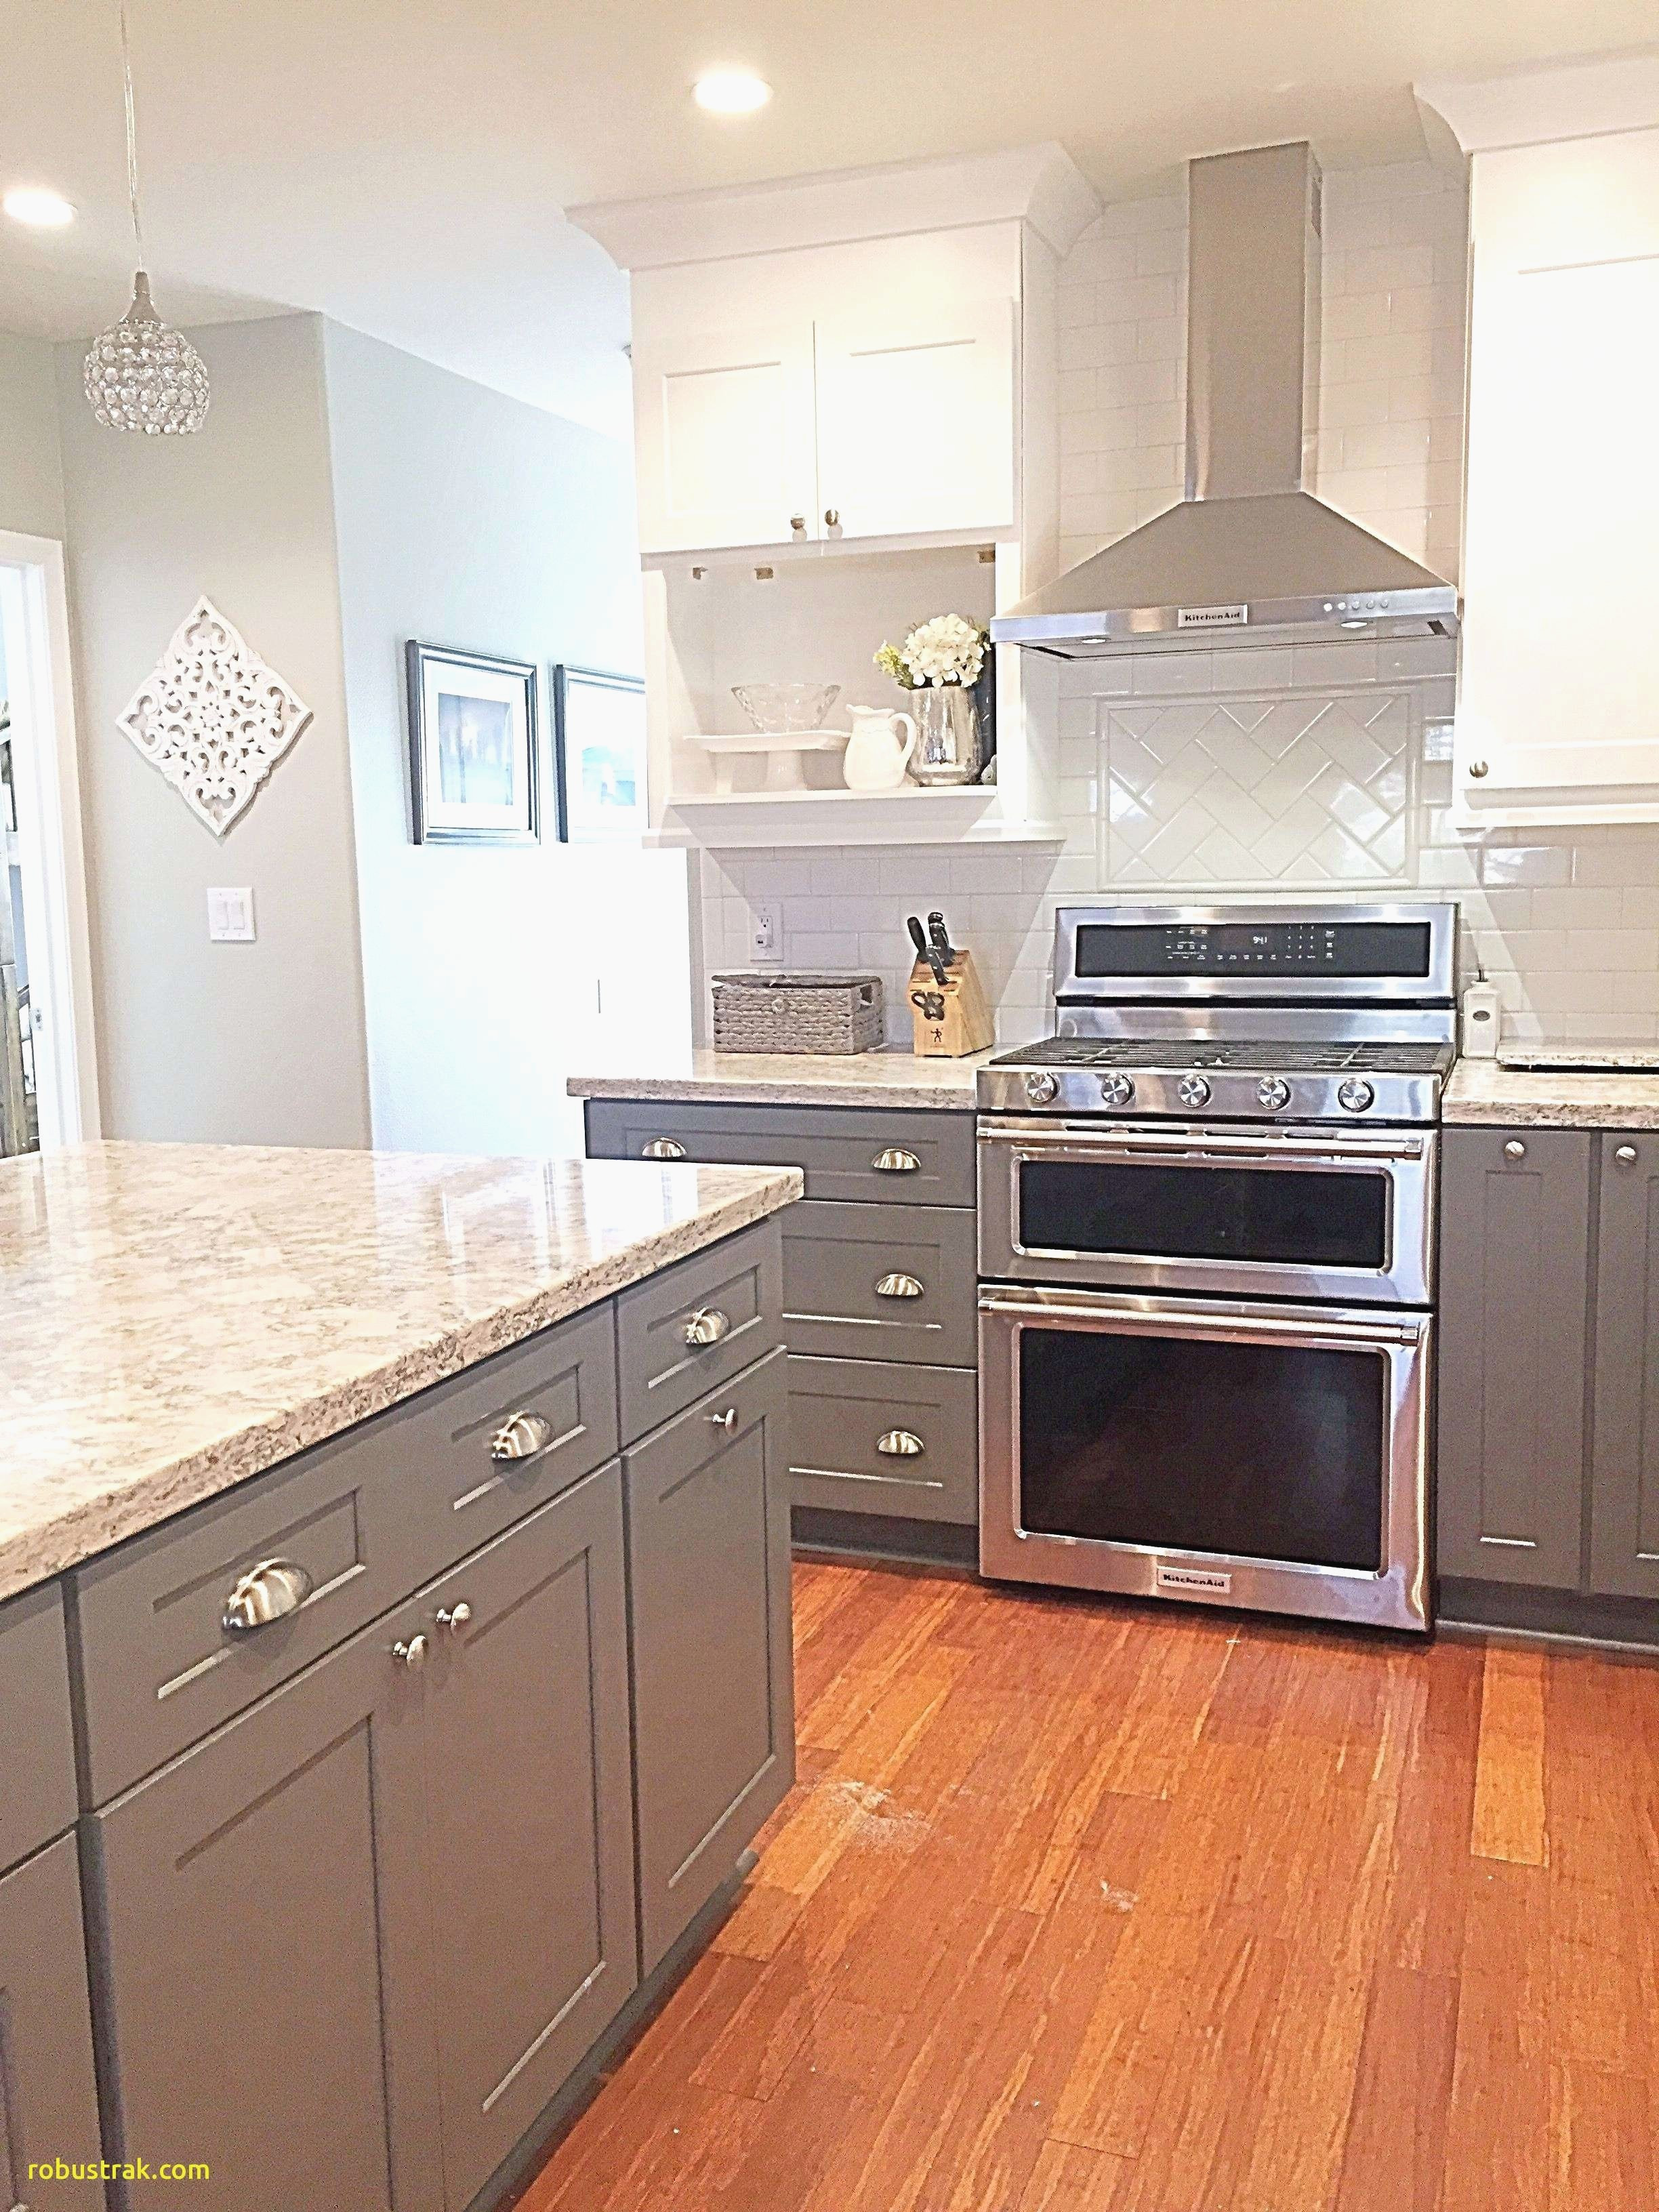 bamboo flooring vs hardwood flooring cost of 18 inspirational hardwood flooring stock dizpos com with regard to hardwood flooring awesome the most kitchen cabinet wood colors stock home ideas pictures